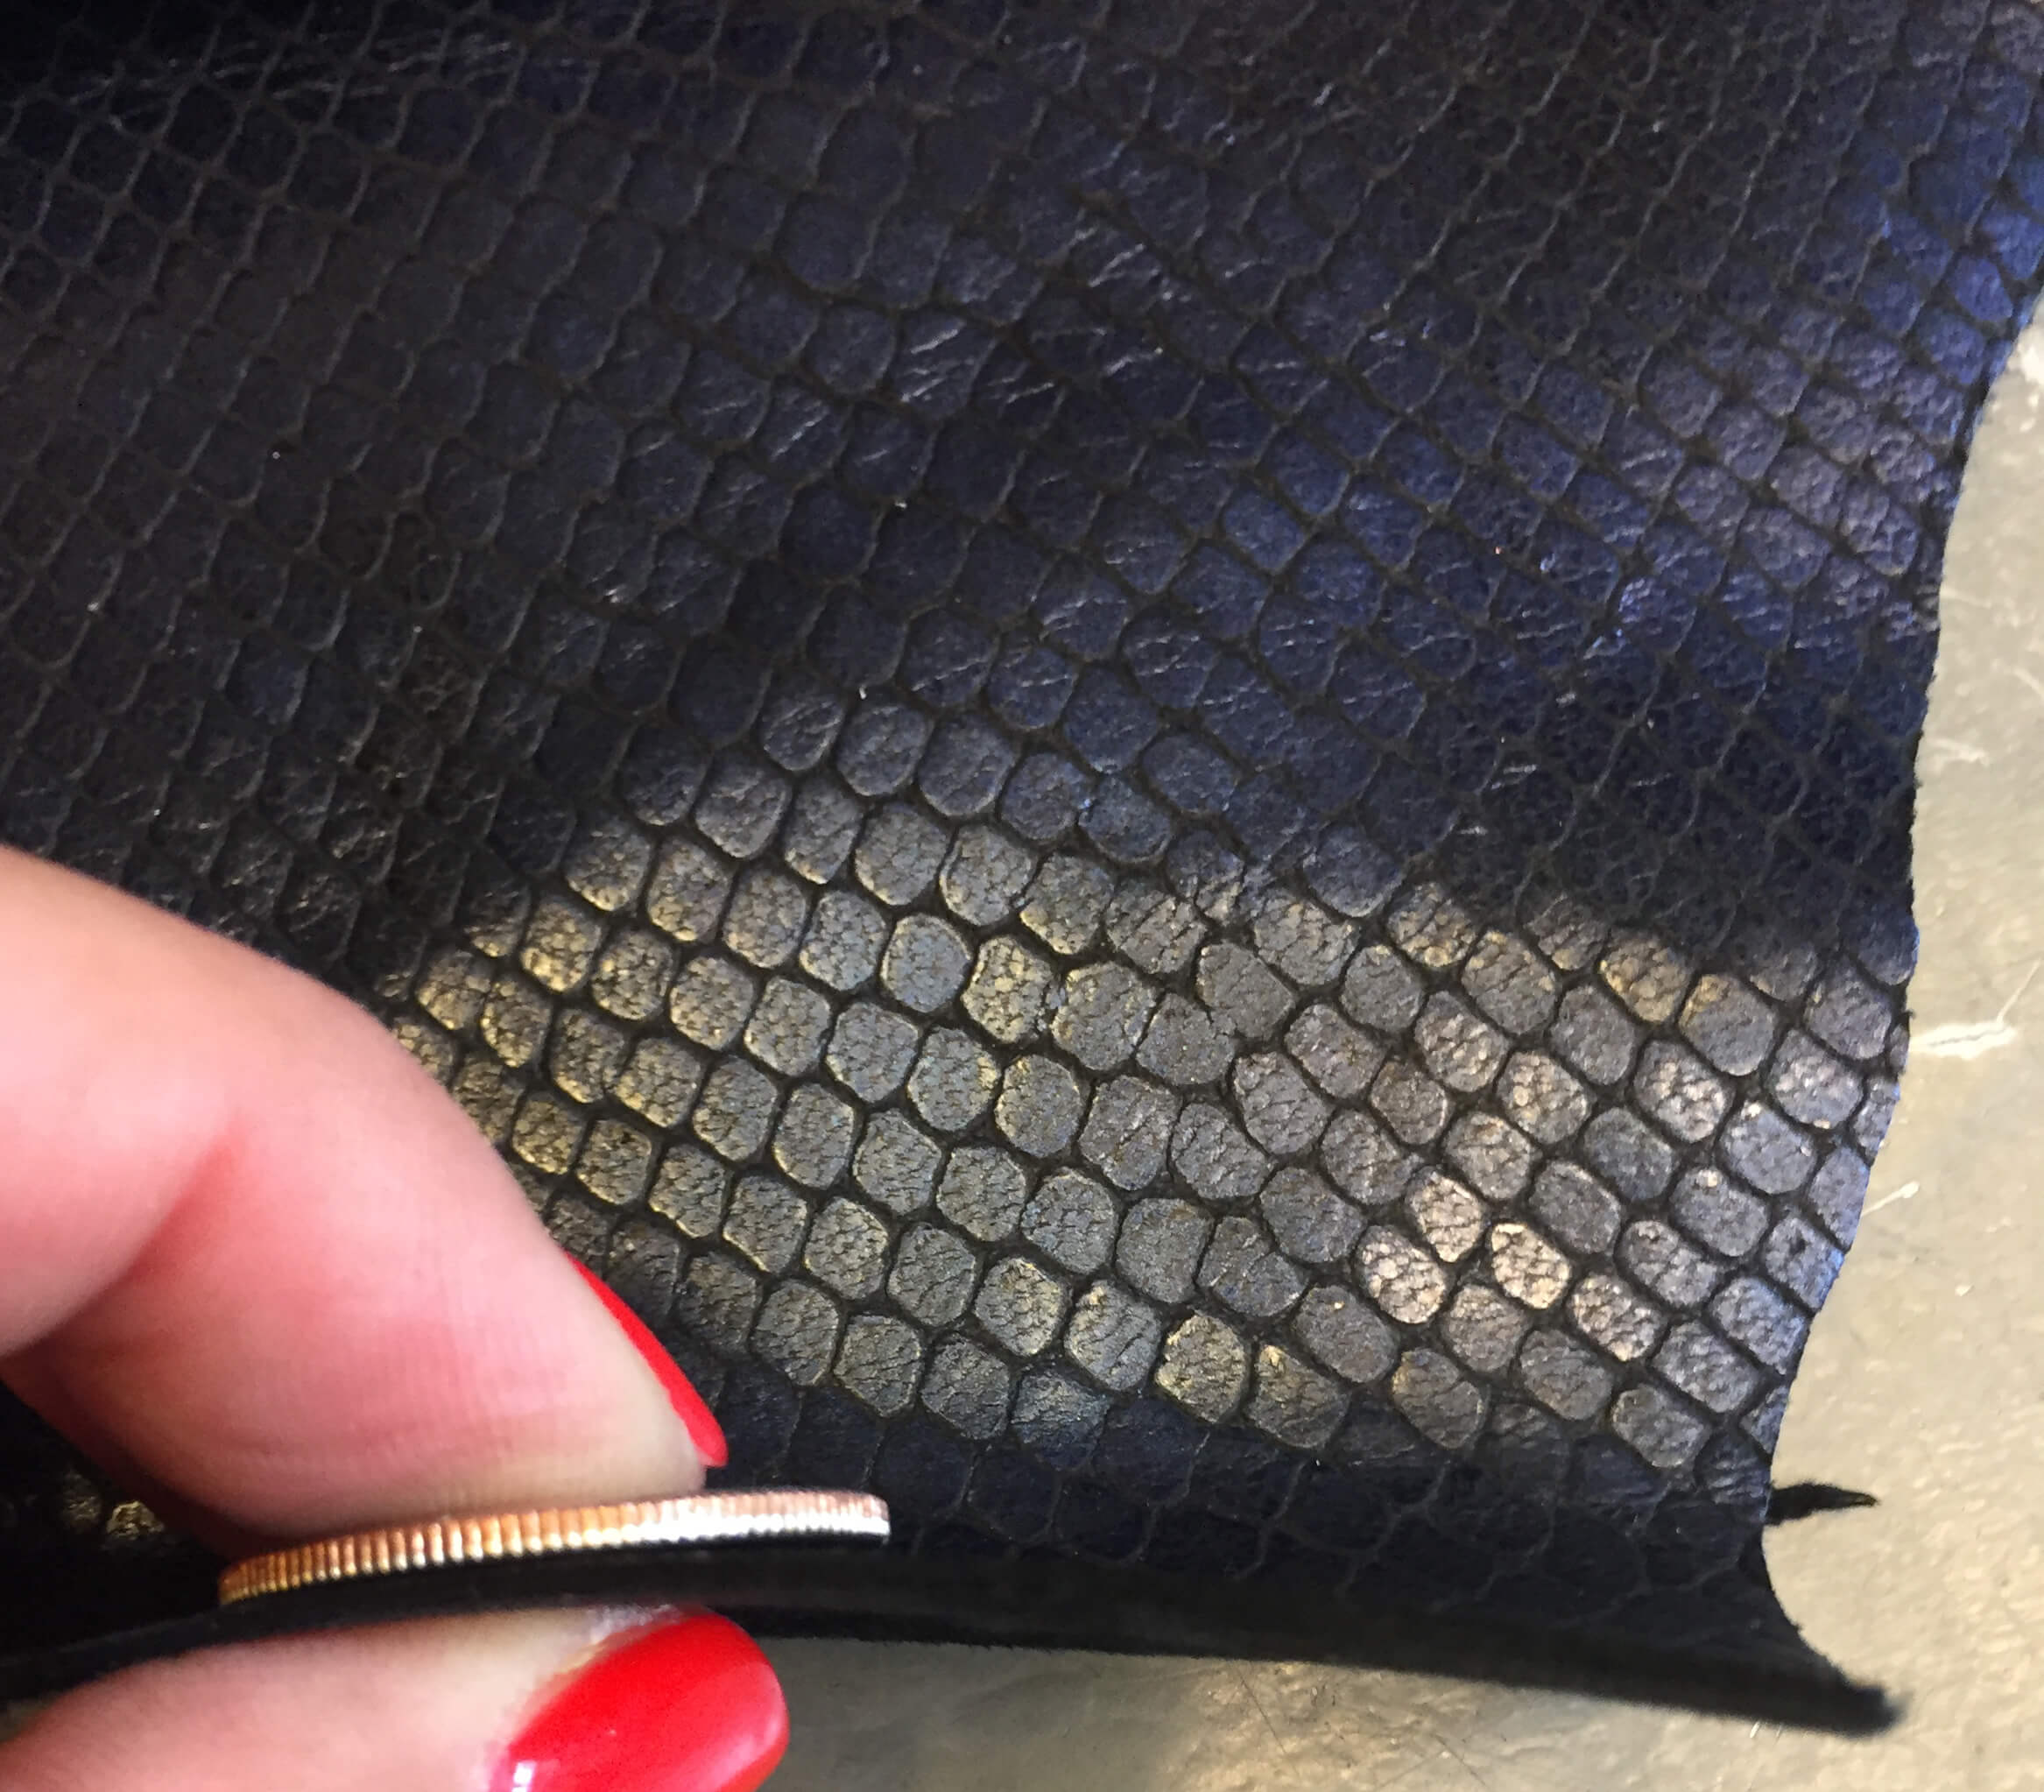 SALE Blue Genuine Leather Hide, Snakeskin Embossing for Crafting and Sewing Projects